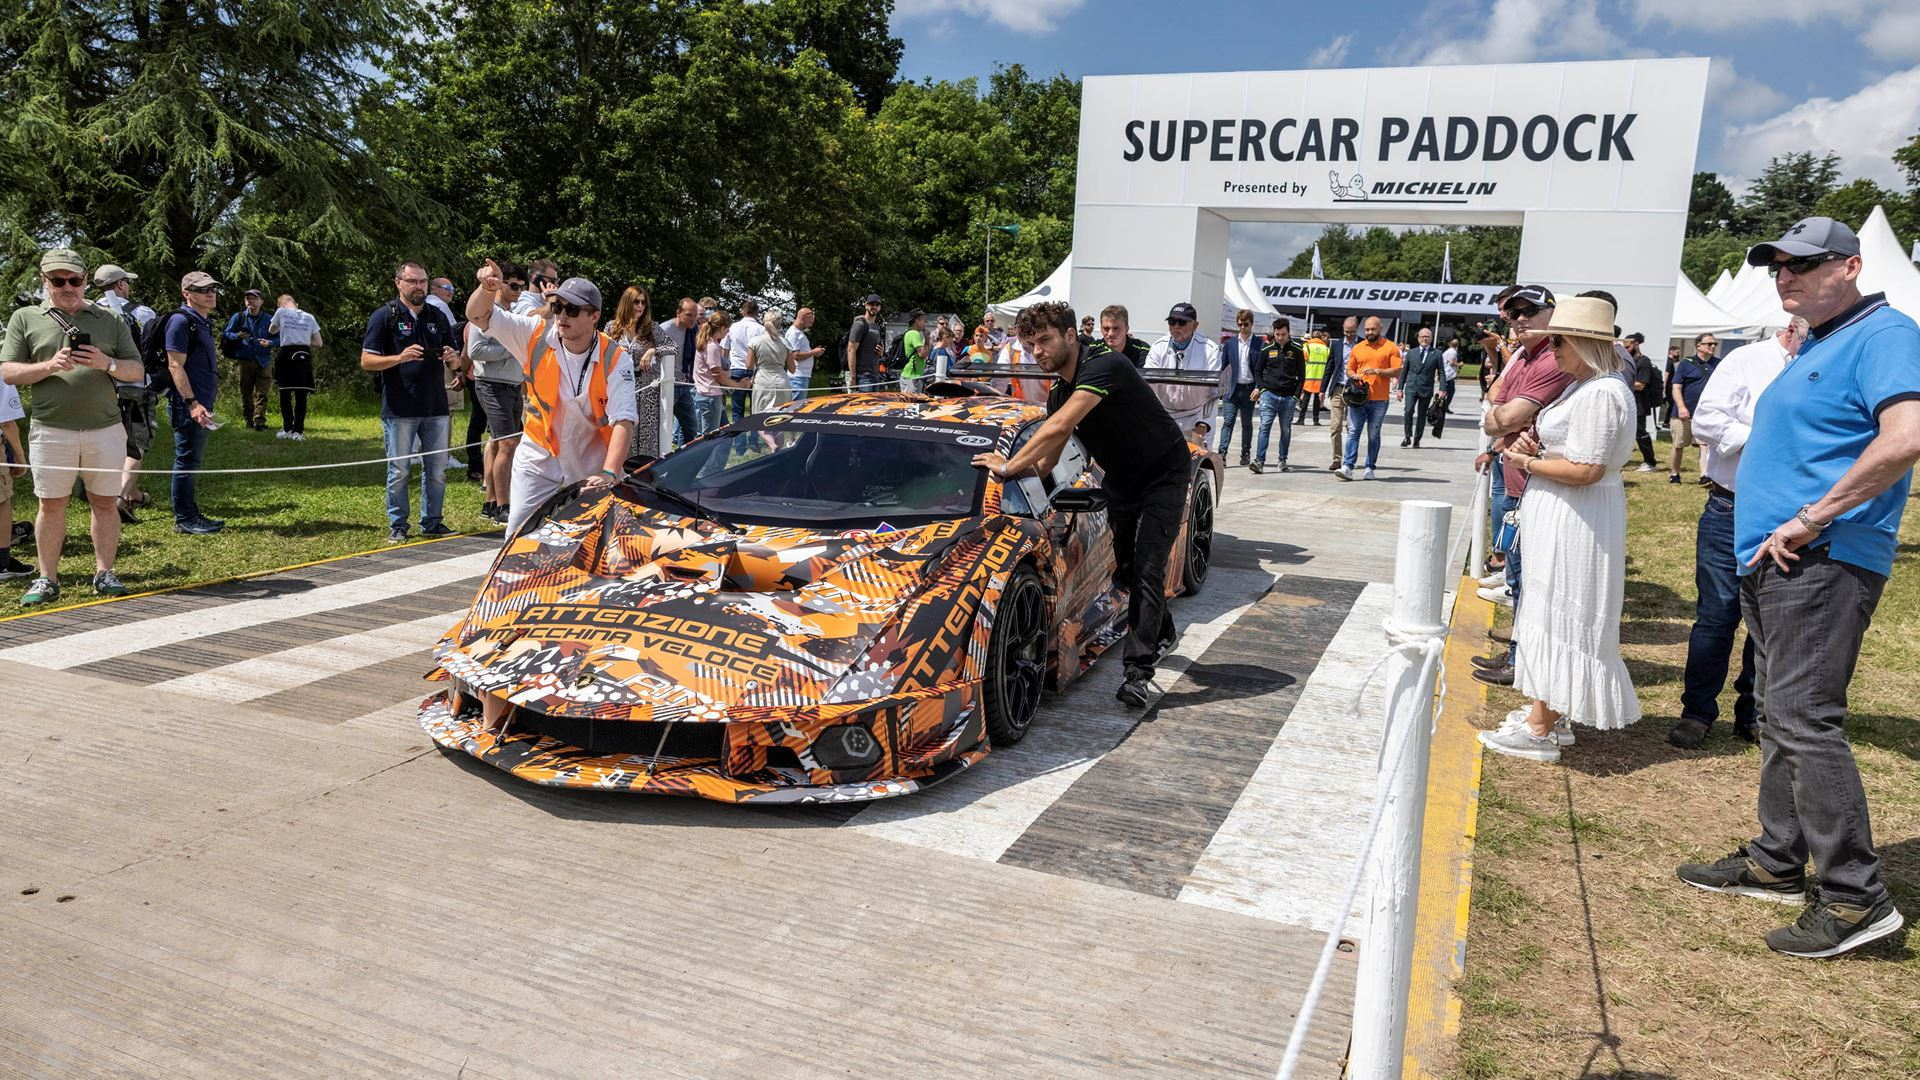 Automobili Lamborghini celebrates V12 and its Squadra Corse motorsport prowess on road and track, at Goodwood Festival of Speed 2021 - Image 5